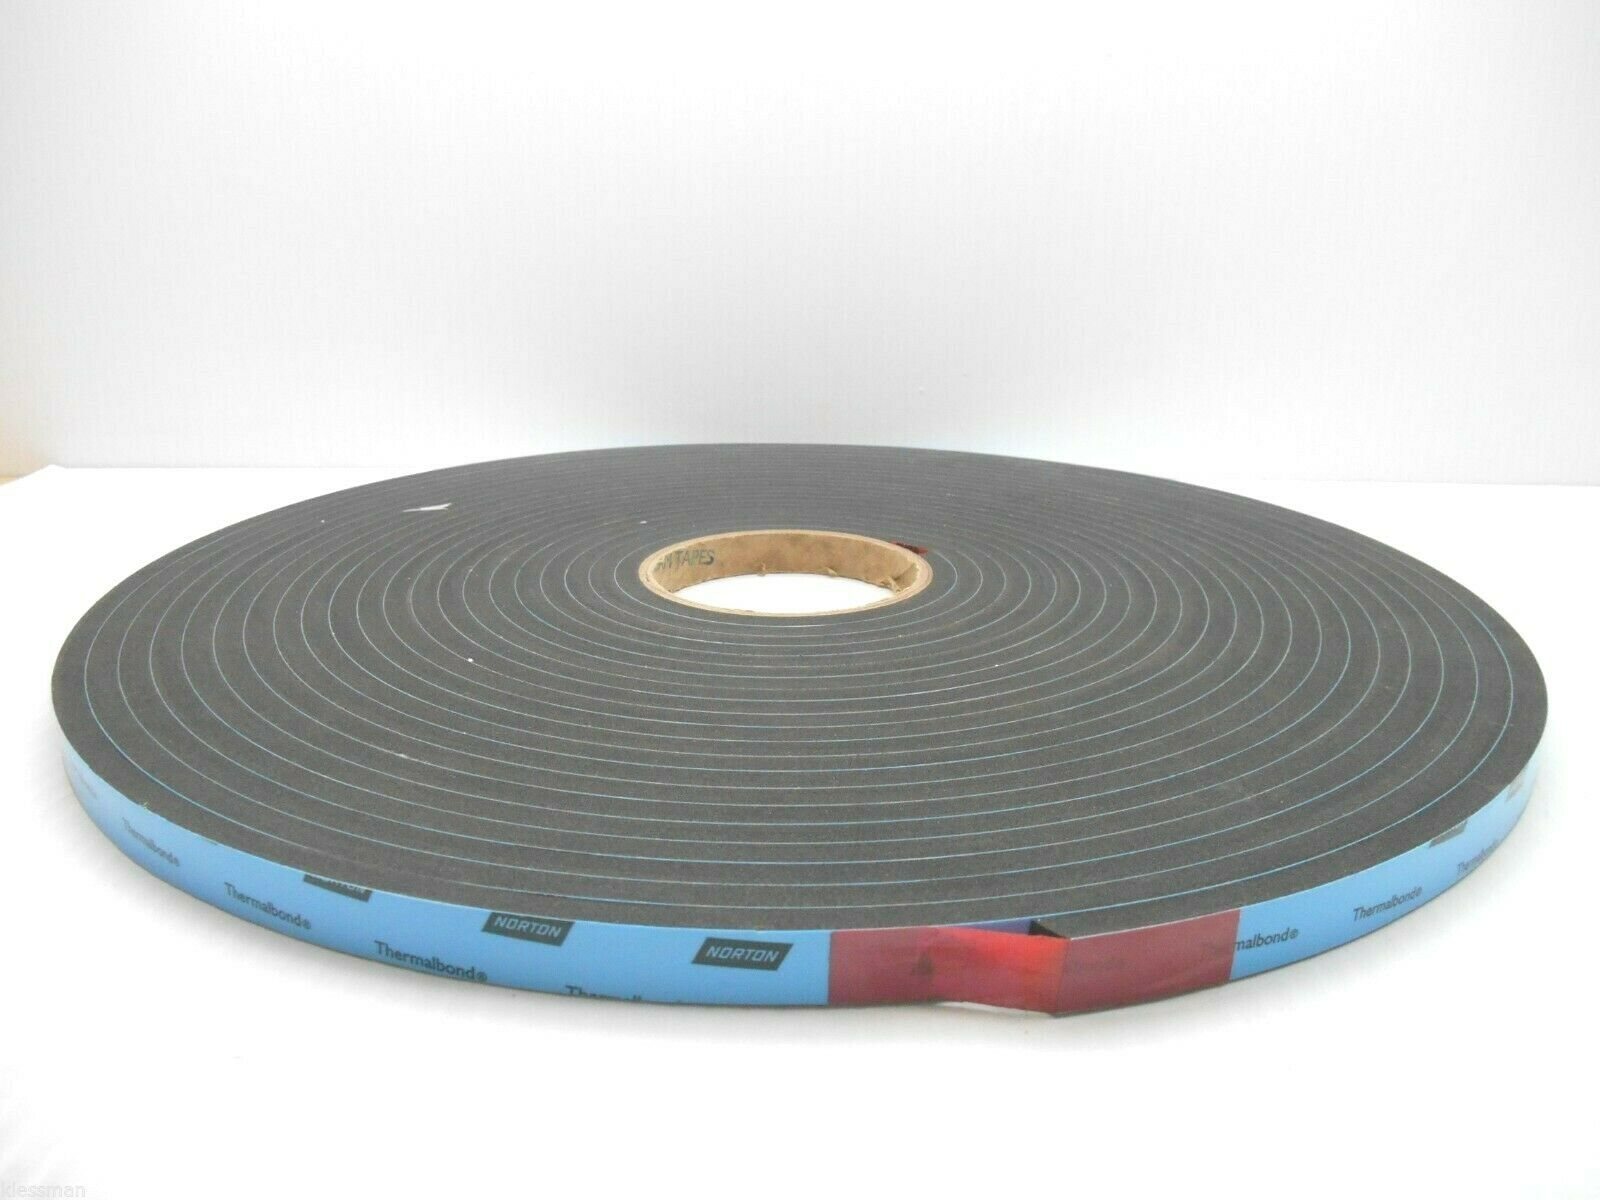 CRL 1//4 x 1//2 Norton V2100 Thermalbond Structural Glazing Spacer Tape